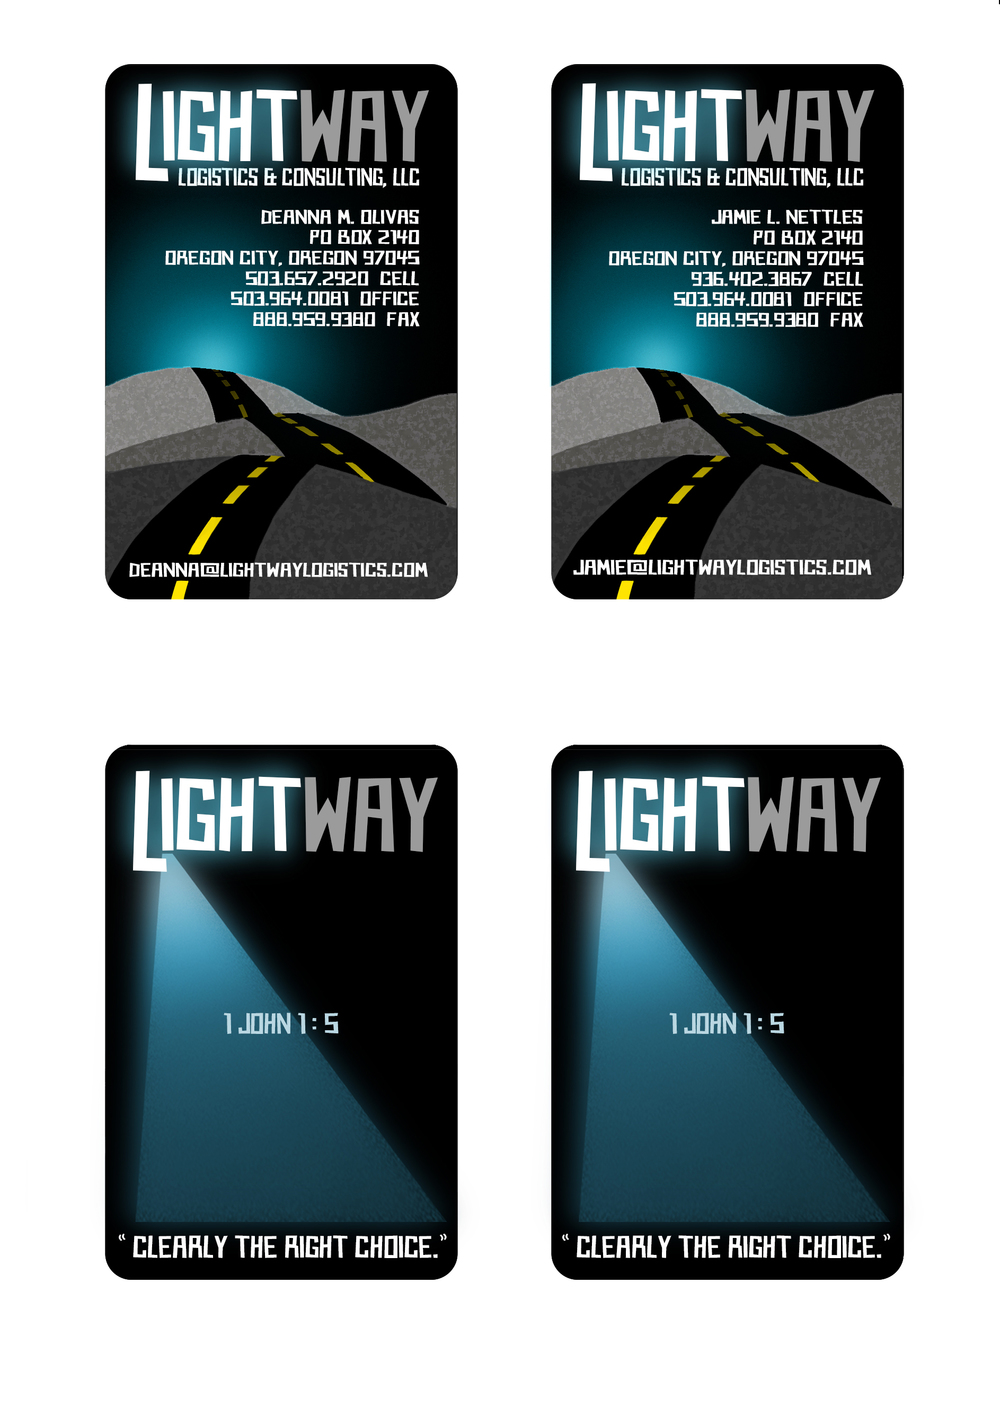 Lightway Logistics & Consulting